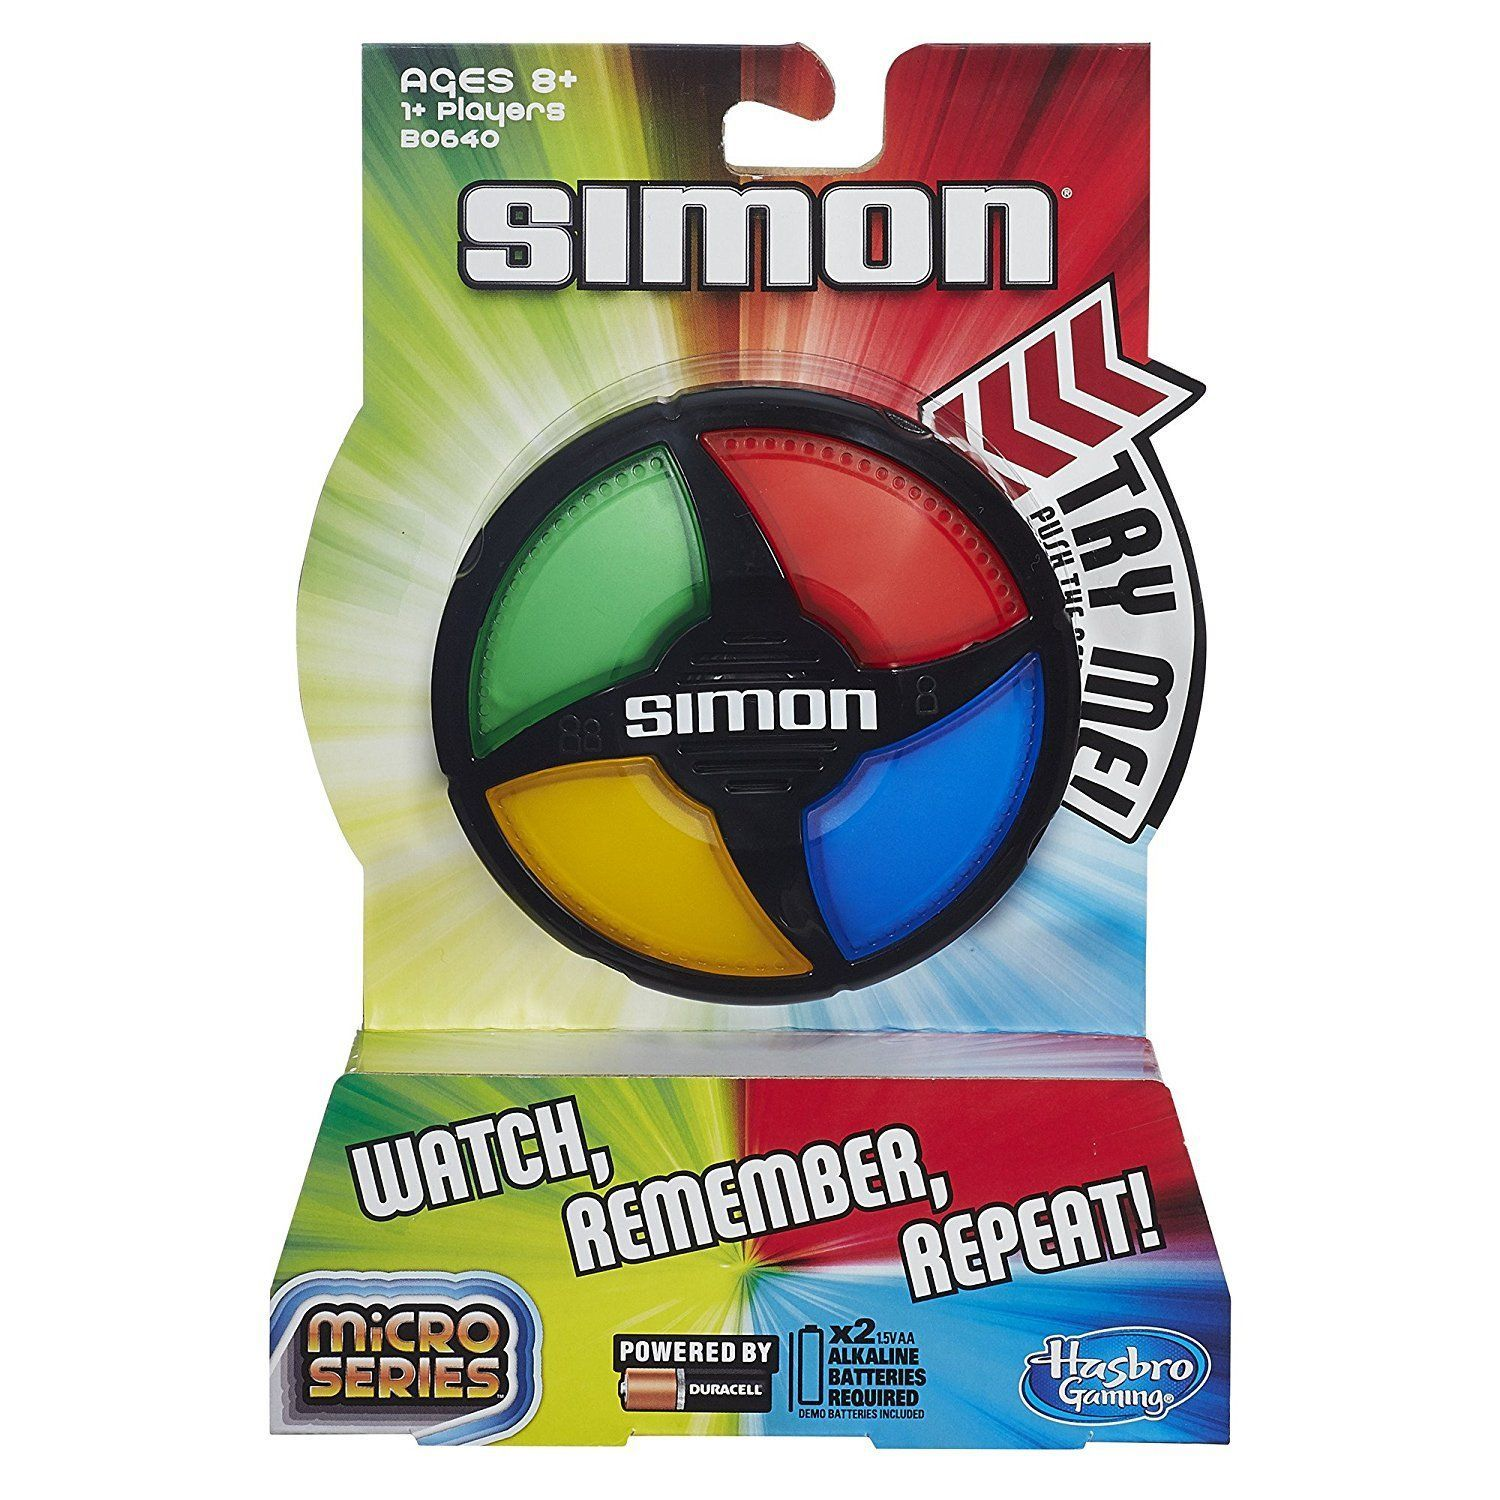 THE MINI SIMON (With images) Games for kids, Game sales